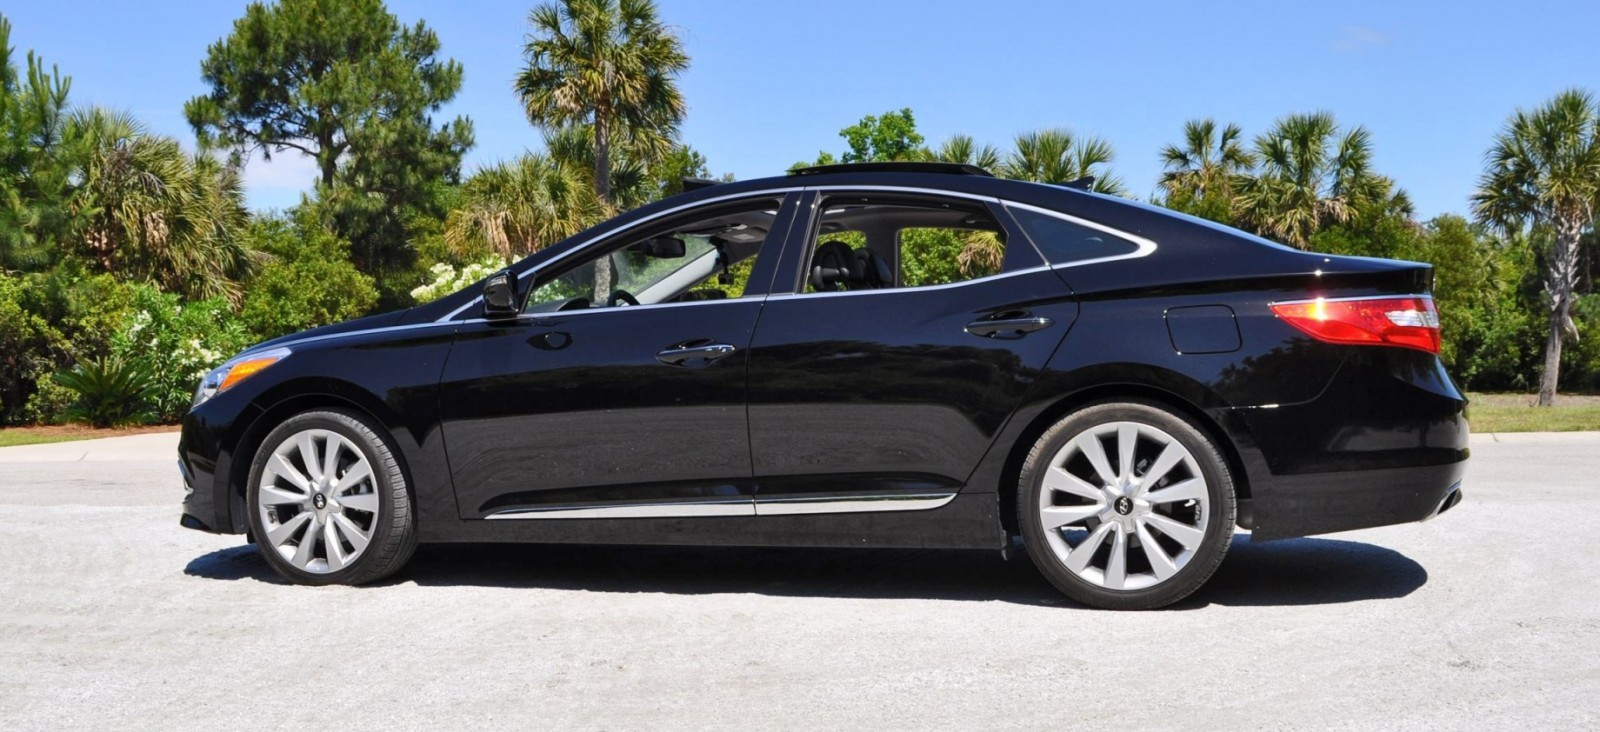 Road Test Review - 2015 Hyundai AZERA Limited 112